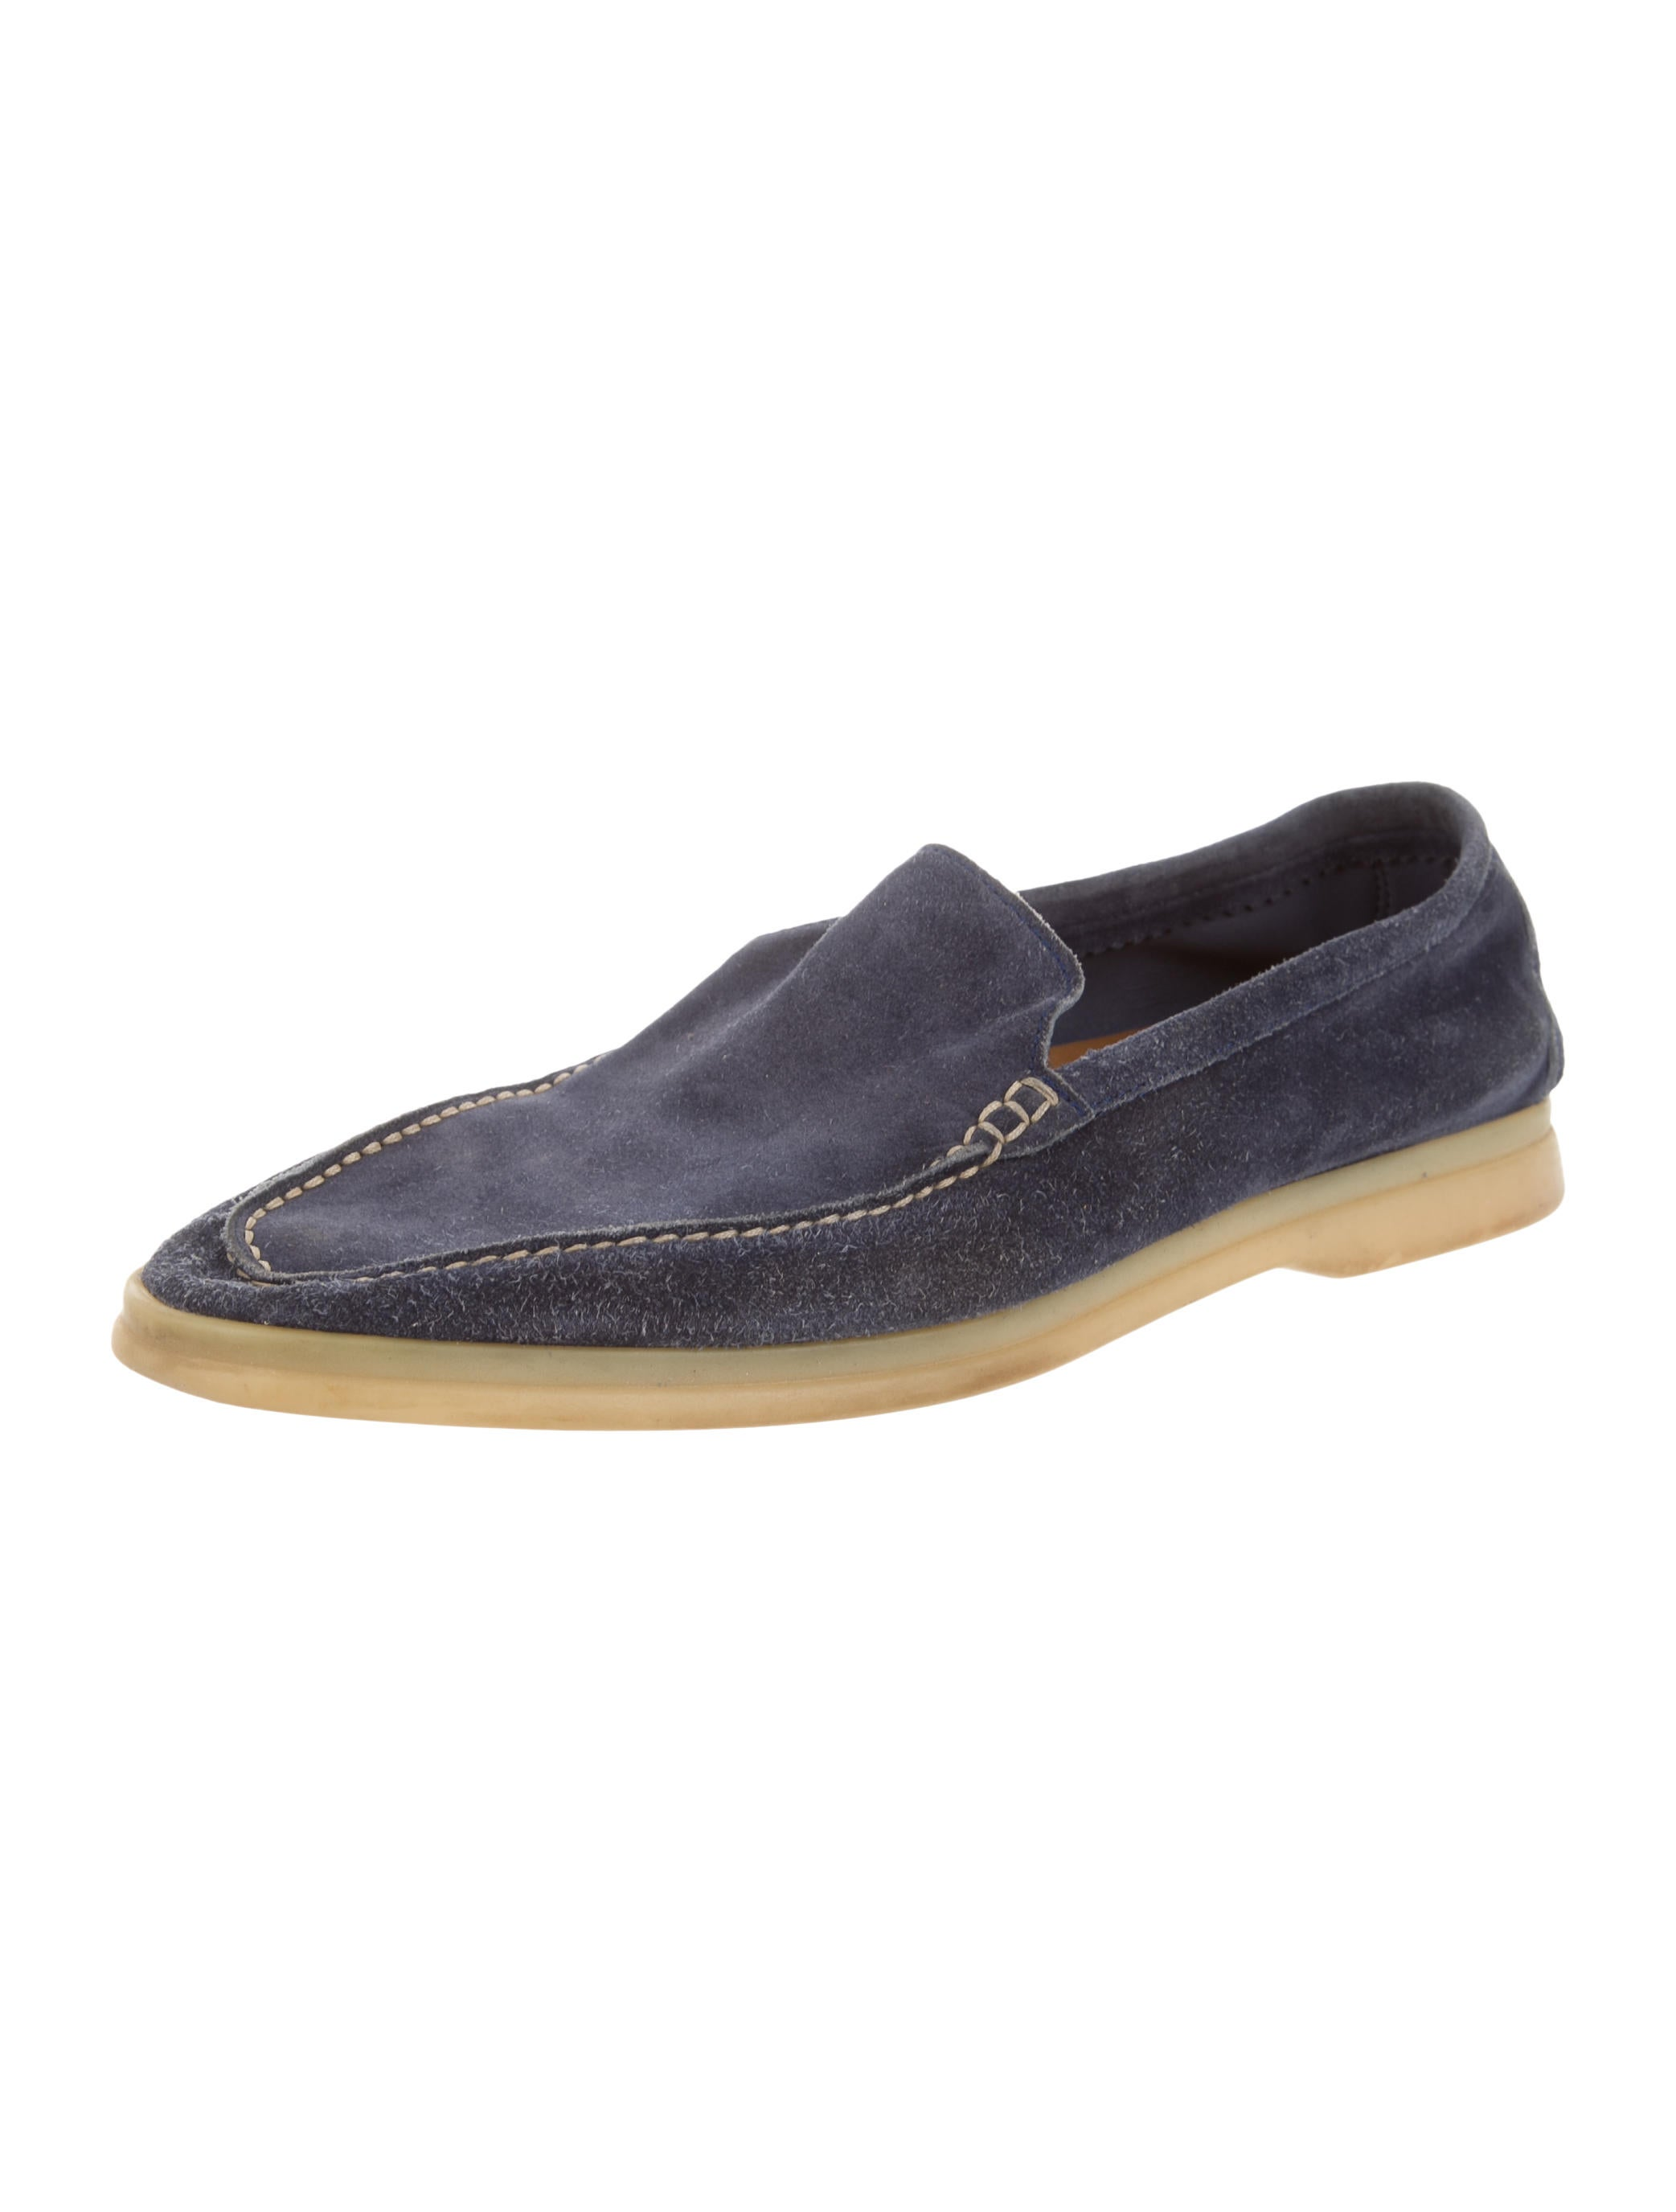 loro piana suede summer walk loafers shoes lor28941